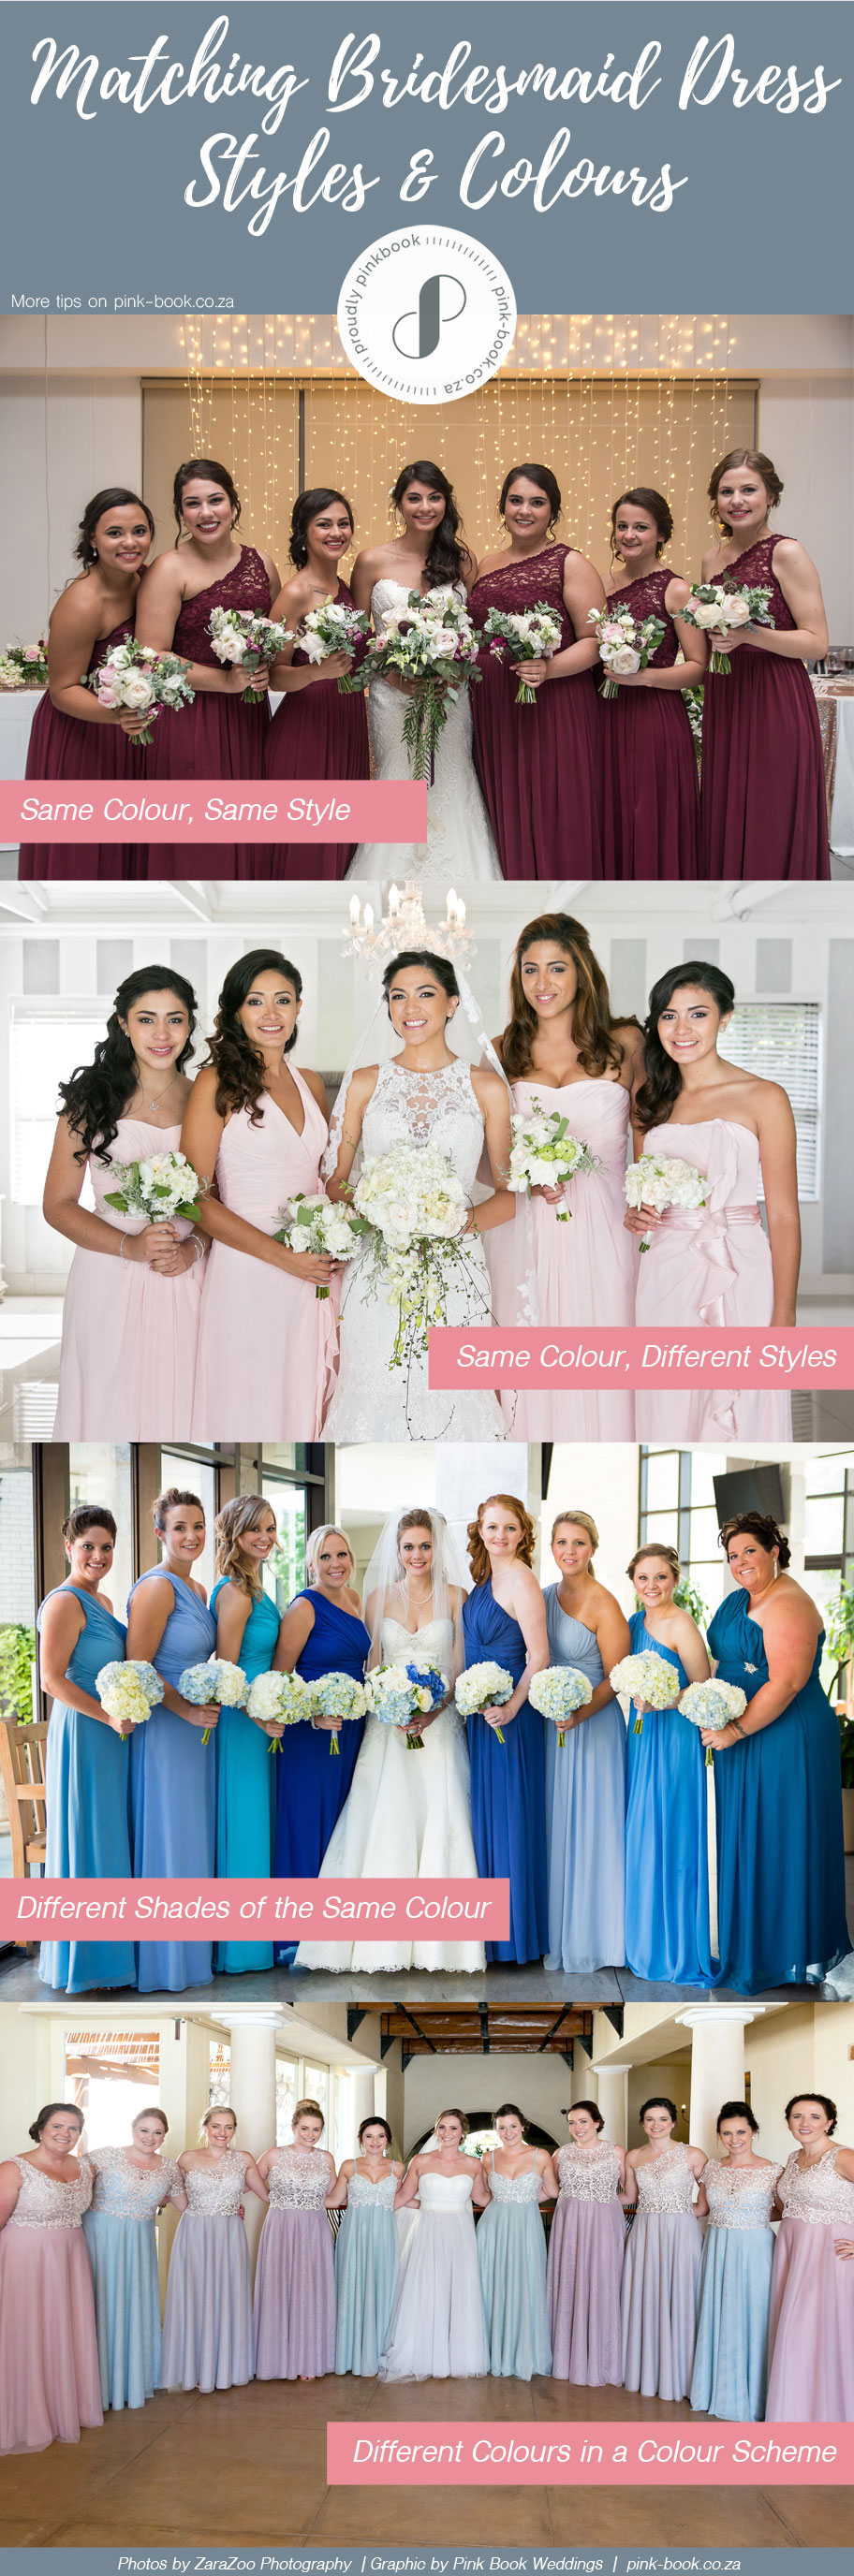 Matching Bridesmaid Dresses Styles Colours